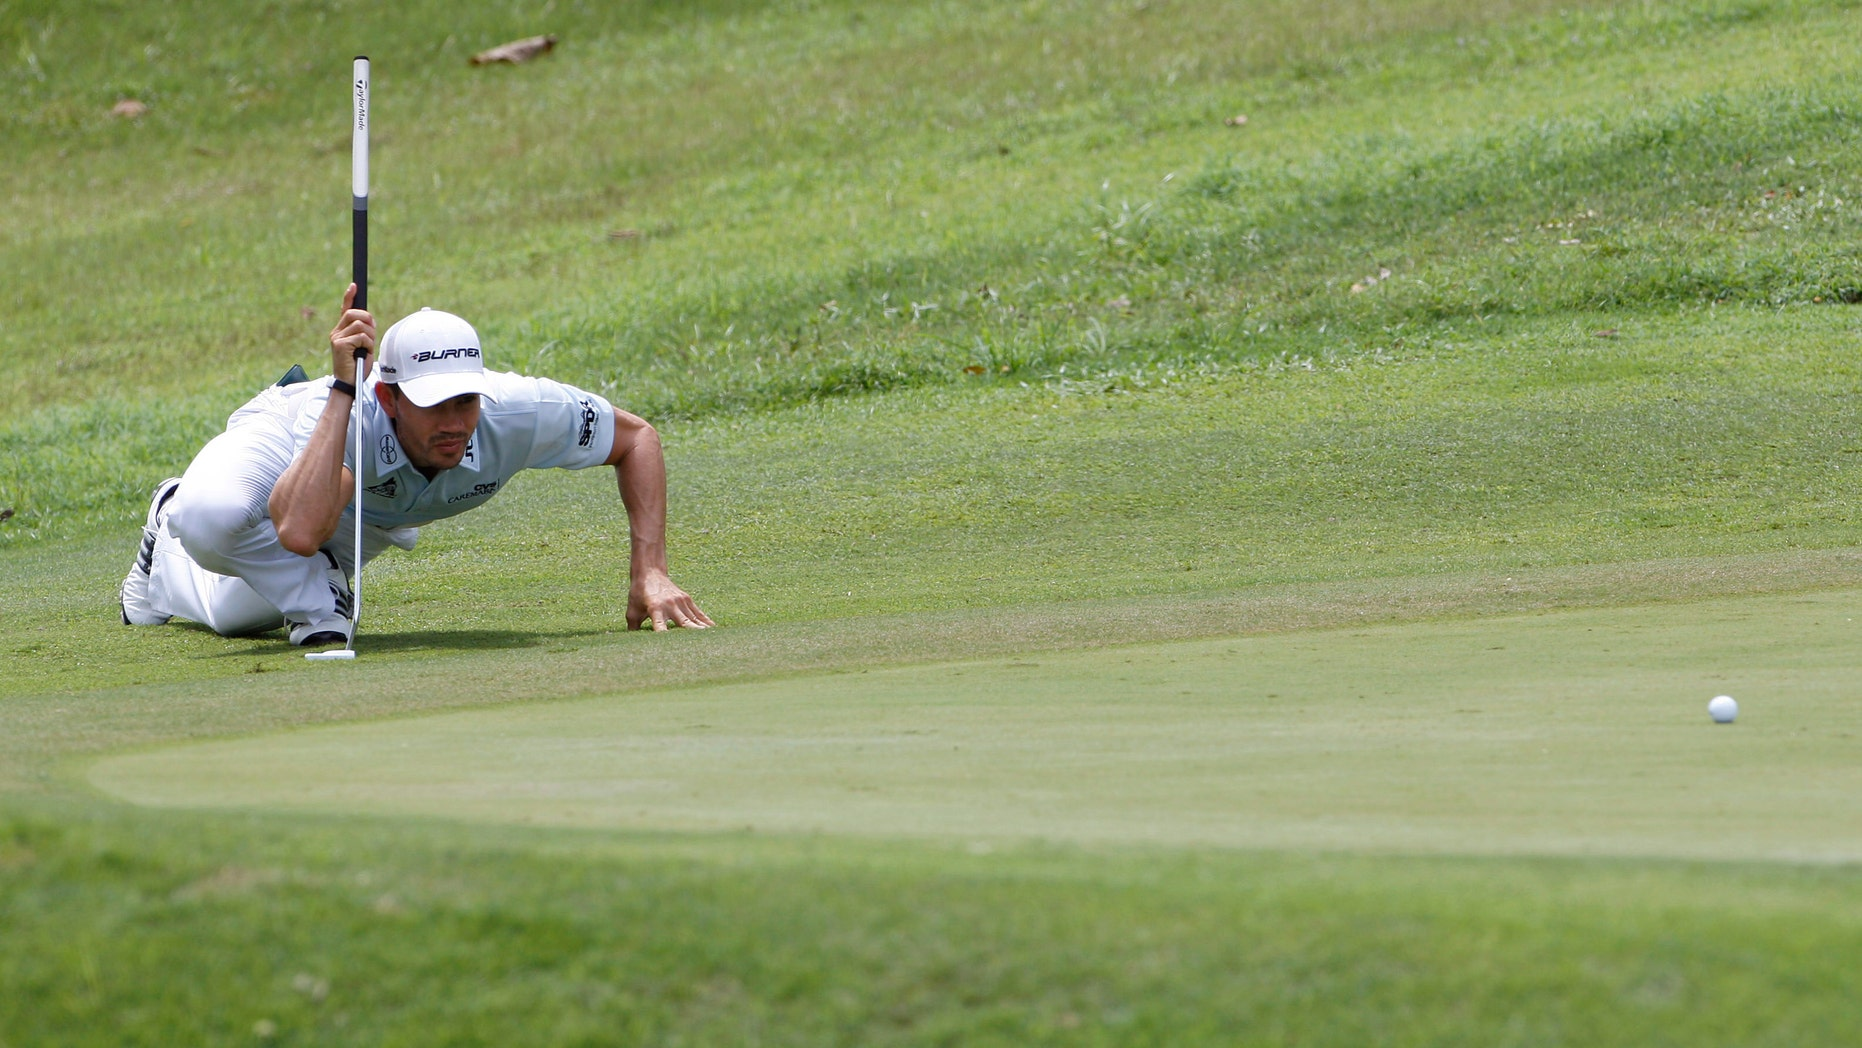 Camilo Villegas of Colombia lines up his putt on the 8th green during the third round of the Asia Pacific Classic Malaysia golf tournament at The Mines Resort & Golf Club in Kuala Lumpur, Malaysia, Saturday, Oct. 29, 2011. (AP Photo/Lai Seng Sin)